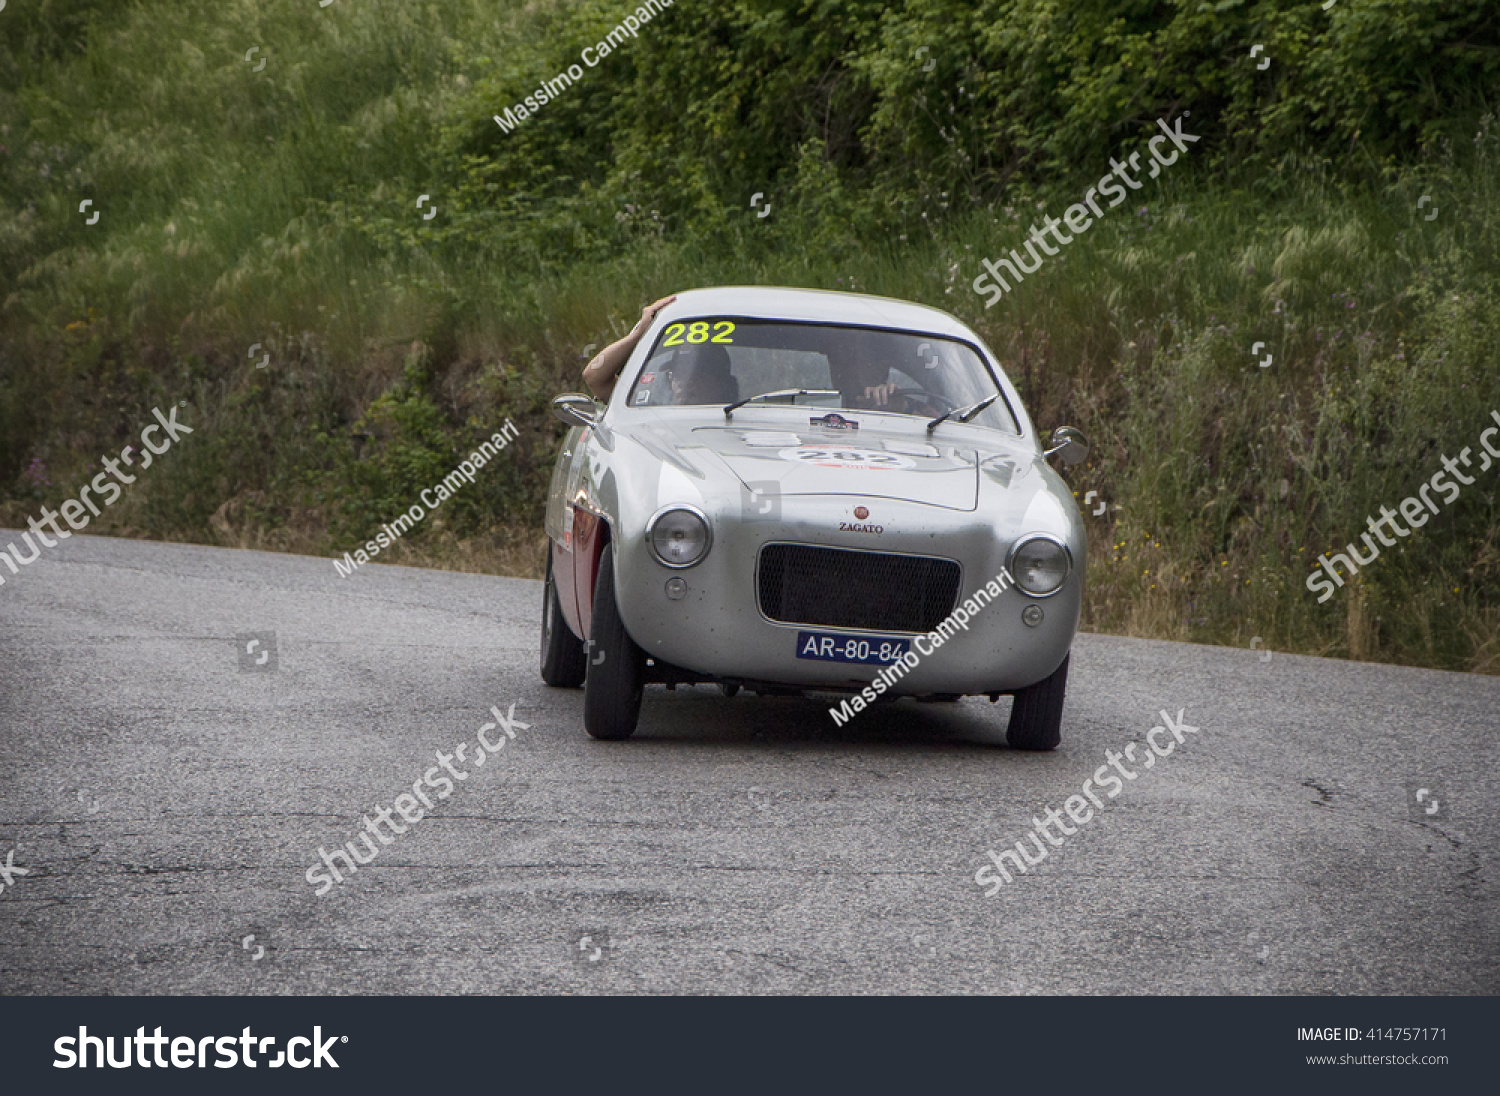 Pesaro Italy May 15 Zagato Fiat Stock Photo 414757171 - Shutterstock